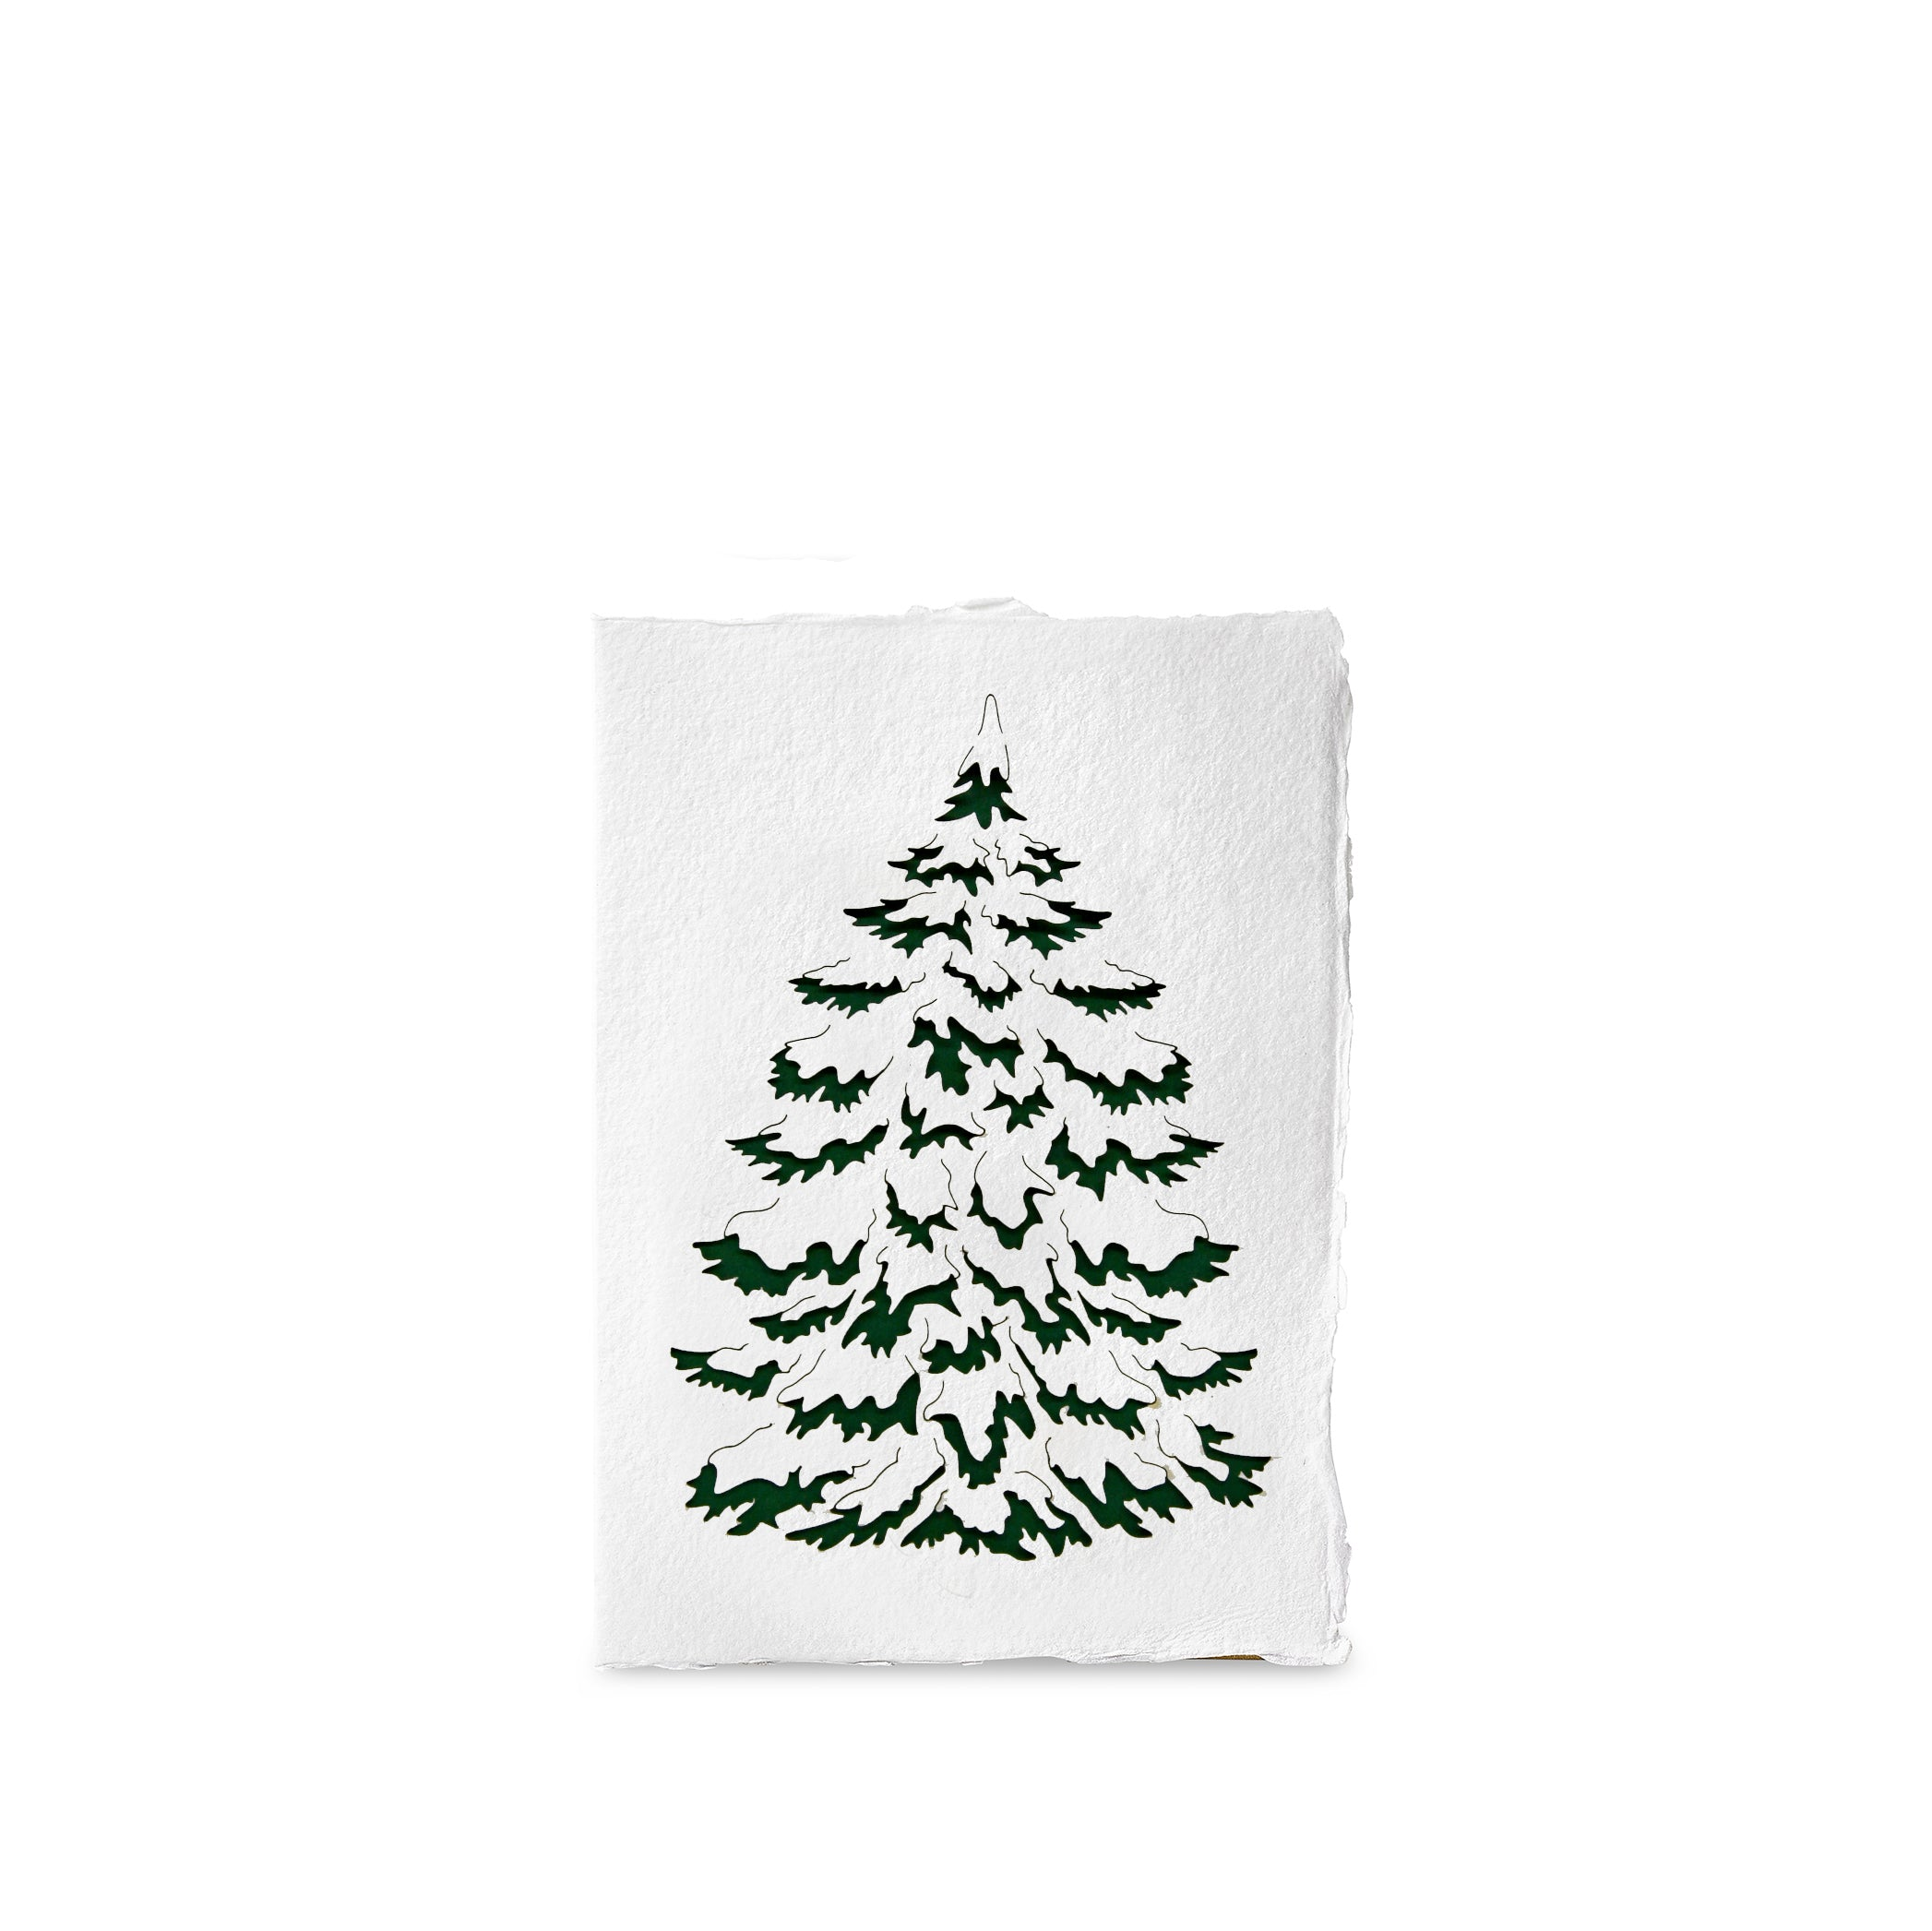 Handmade Paper Greeting Card with Fir Tree